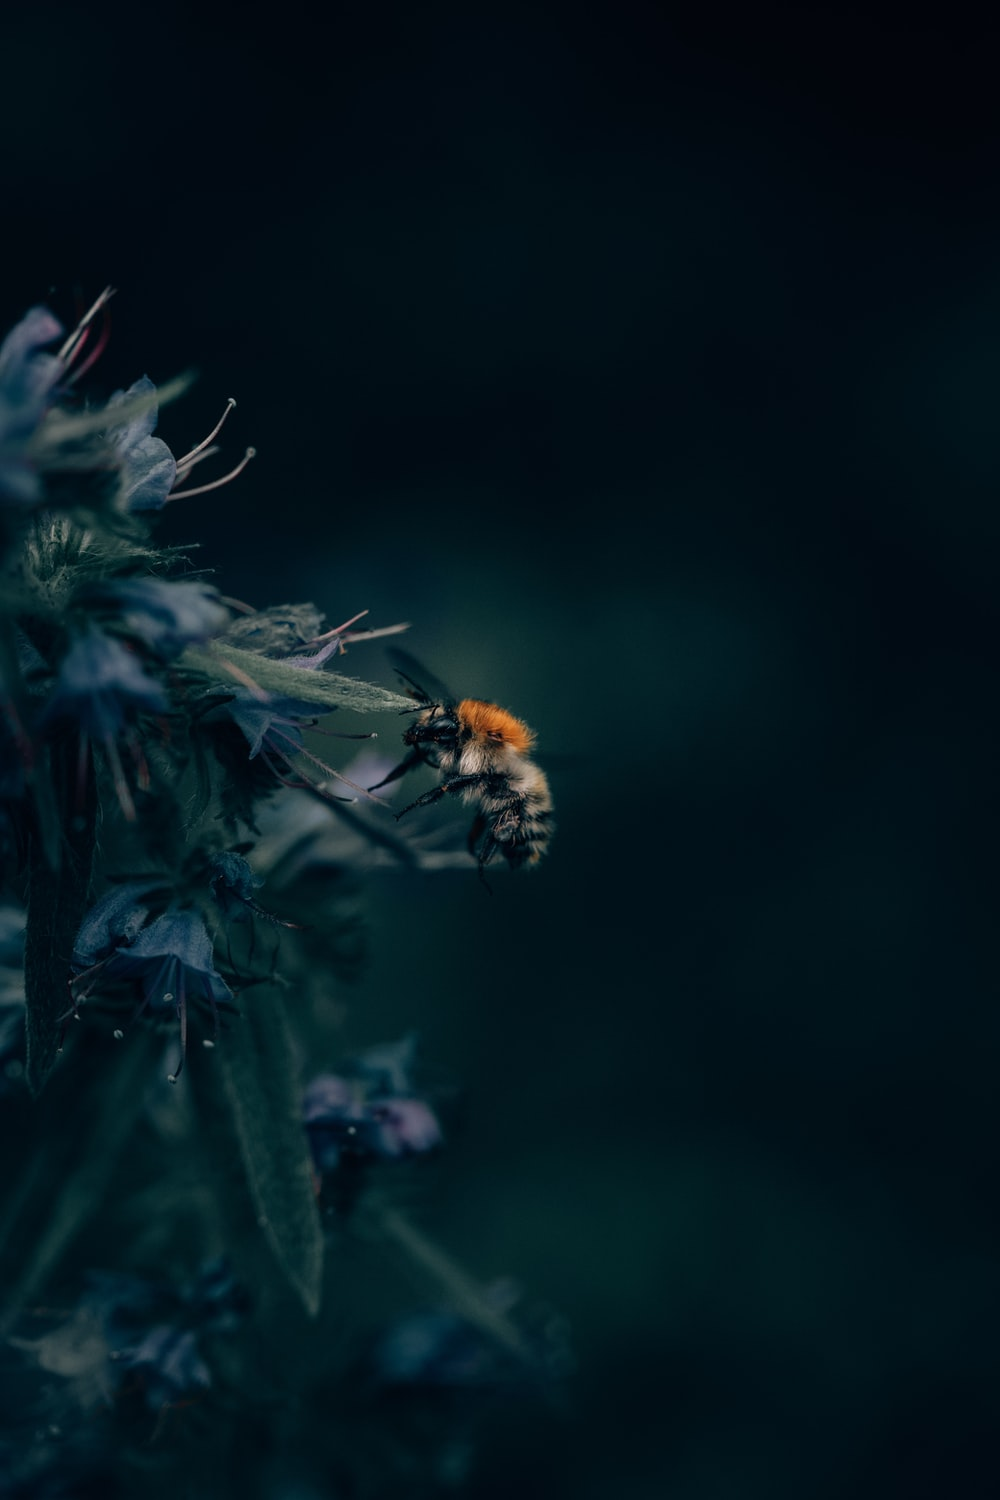 black and orange honeybee on flowers in shallow focus photography